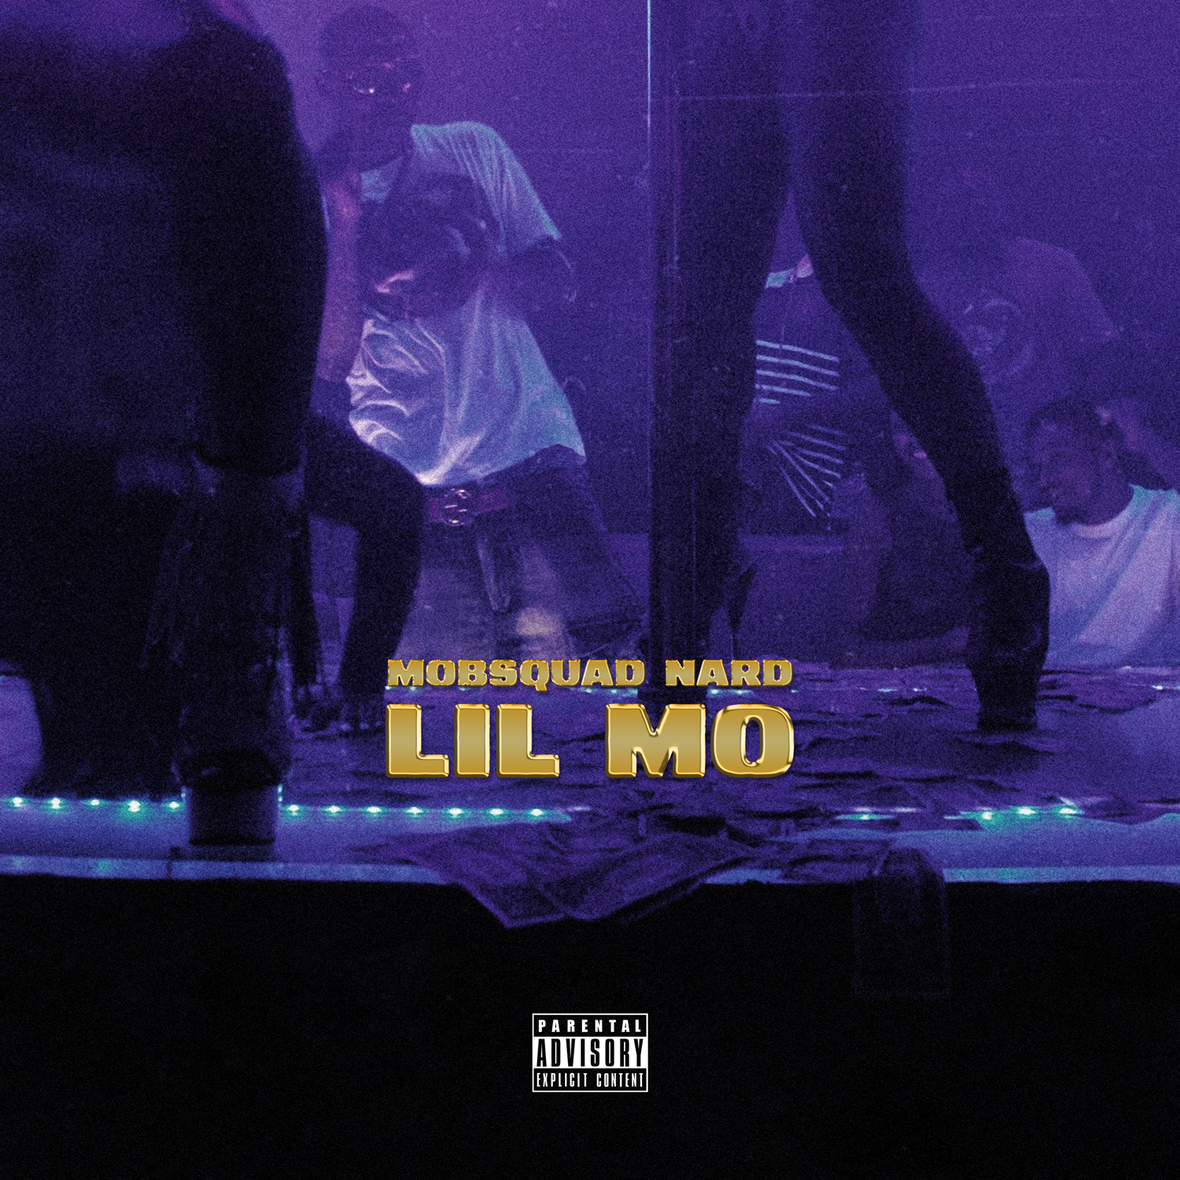 MobSquad Nard - Lil Mo artwork